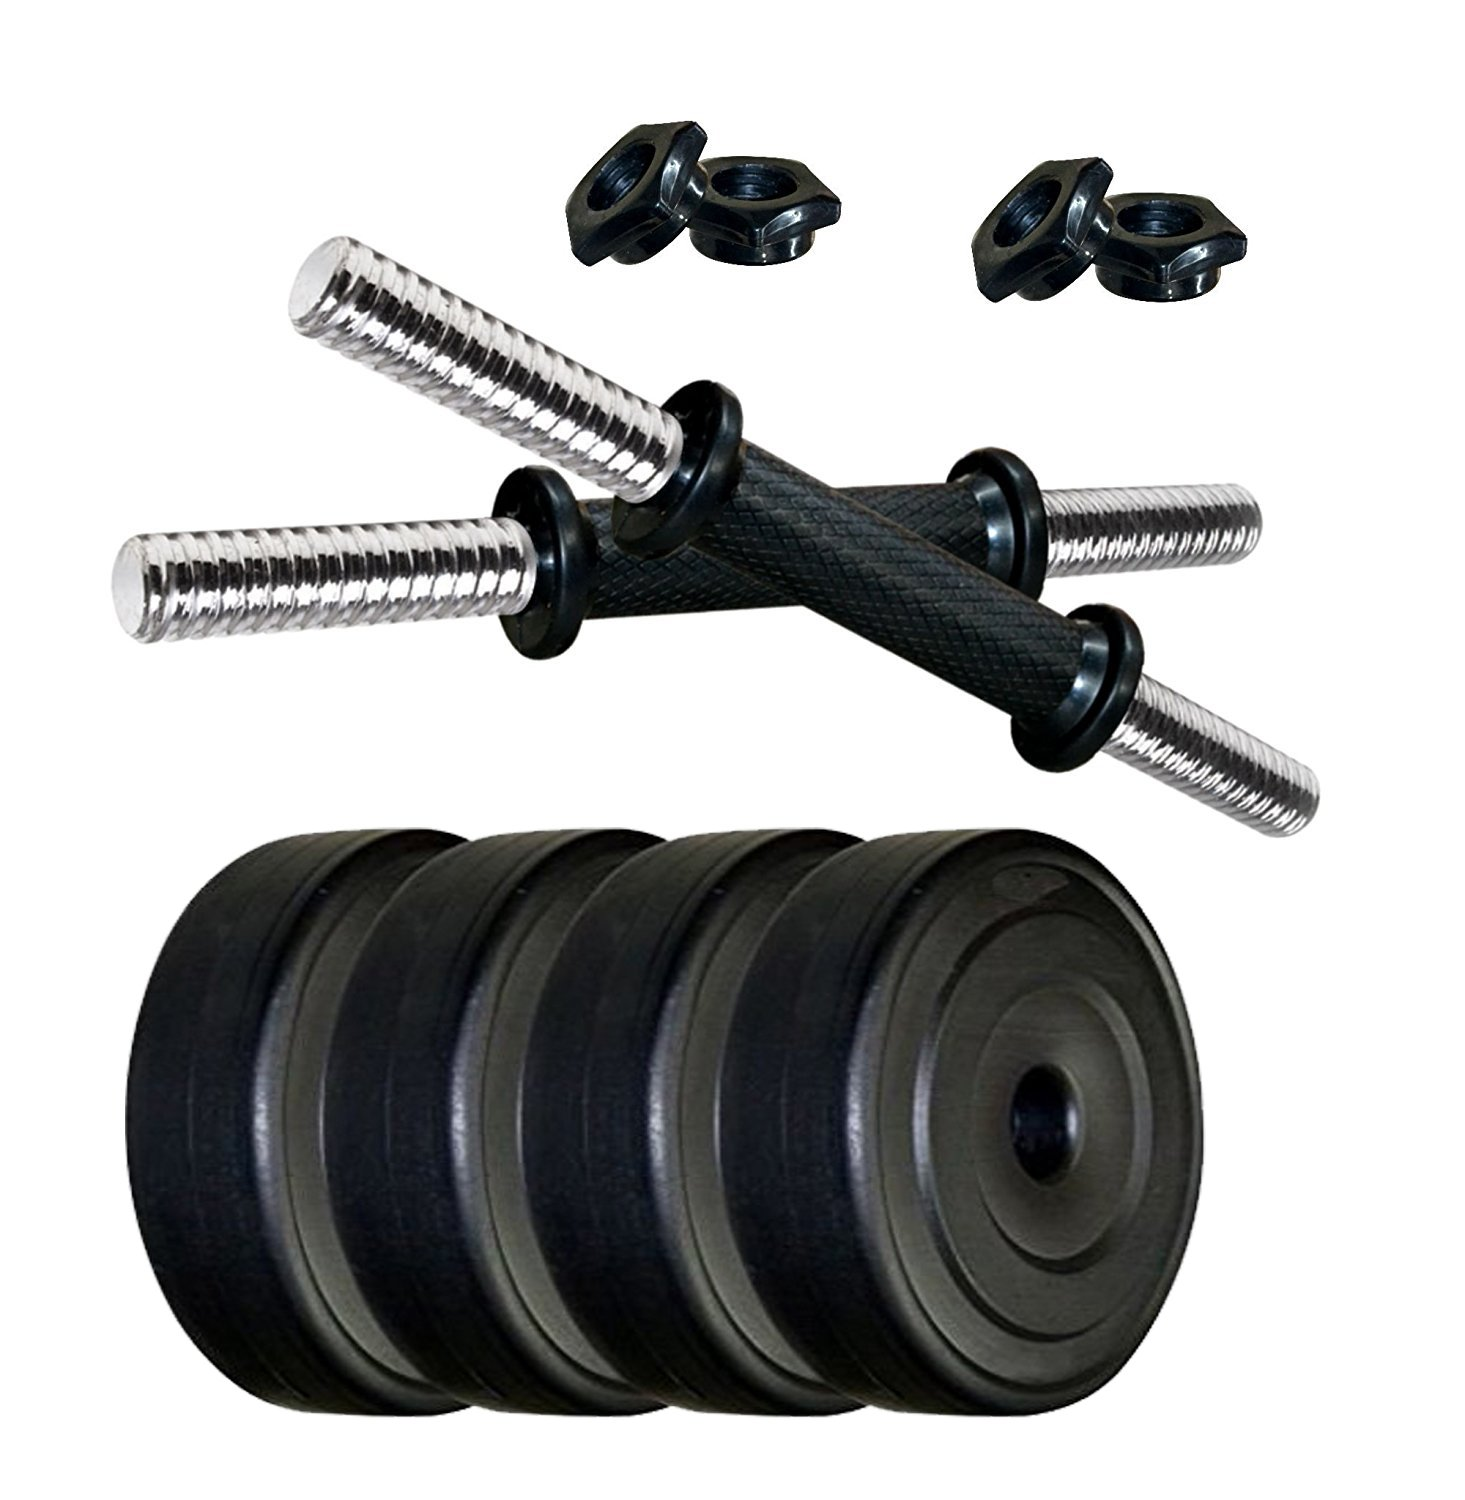 Protoner 20kg Adjustable Dumbbell Set